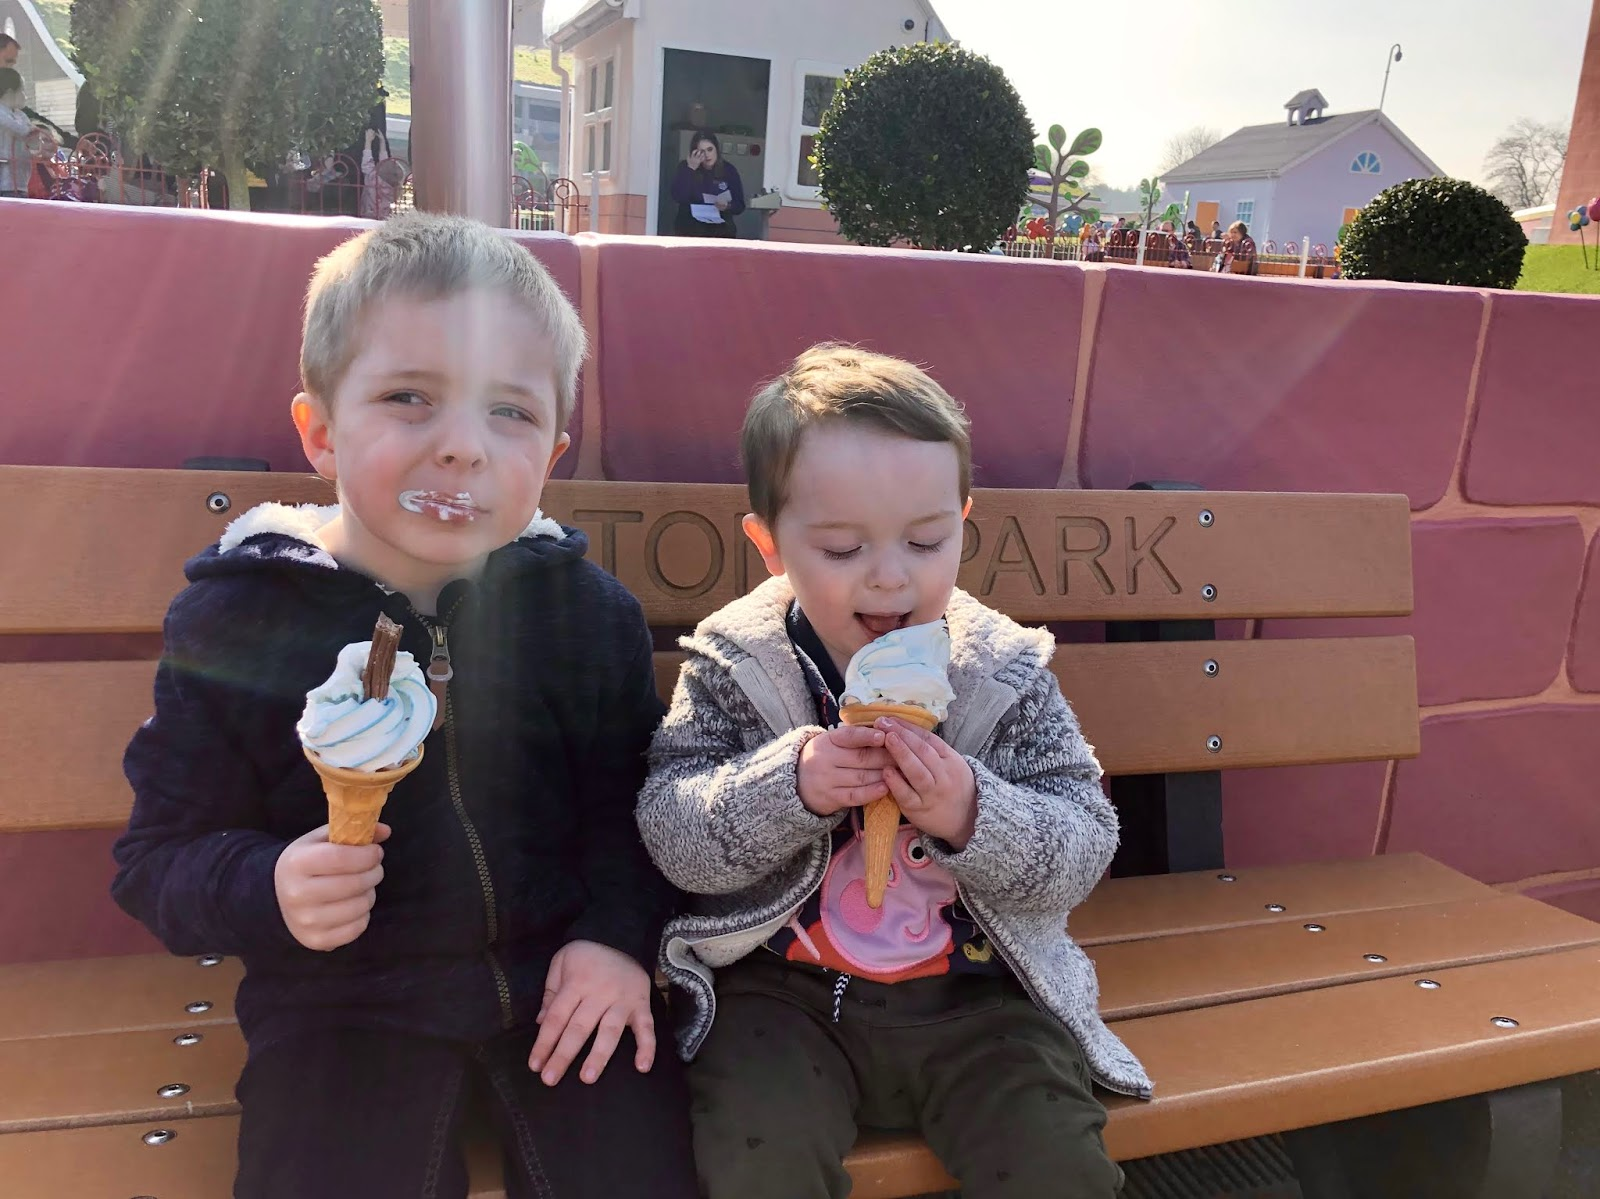 two young boys sitting on a bench and enjoying ice creams on a sunny day at peppa pig world paultons park